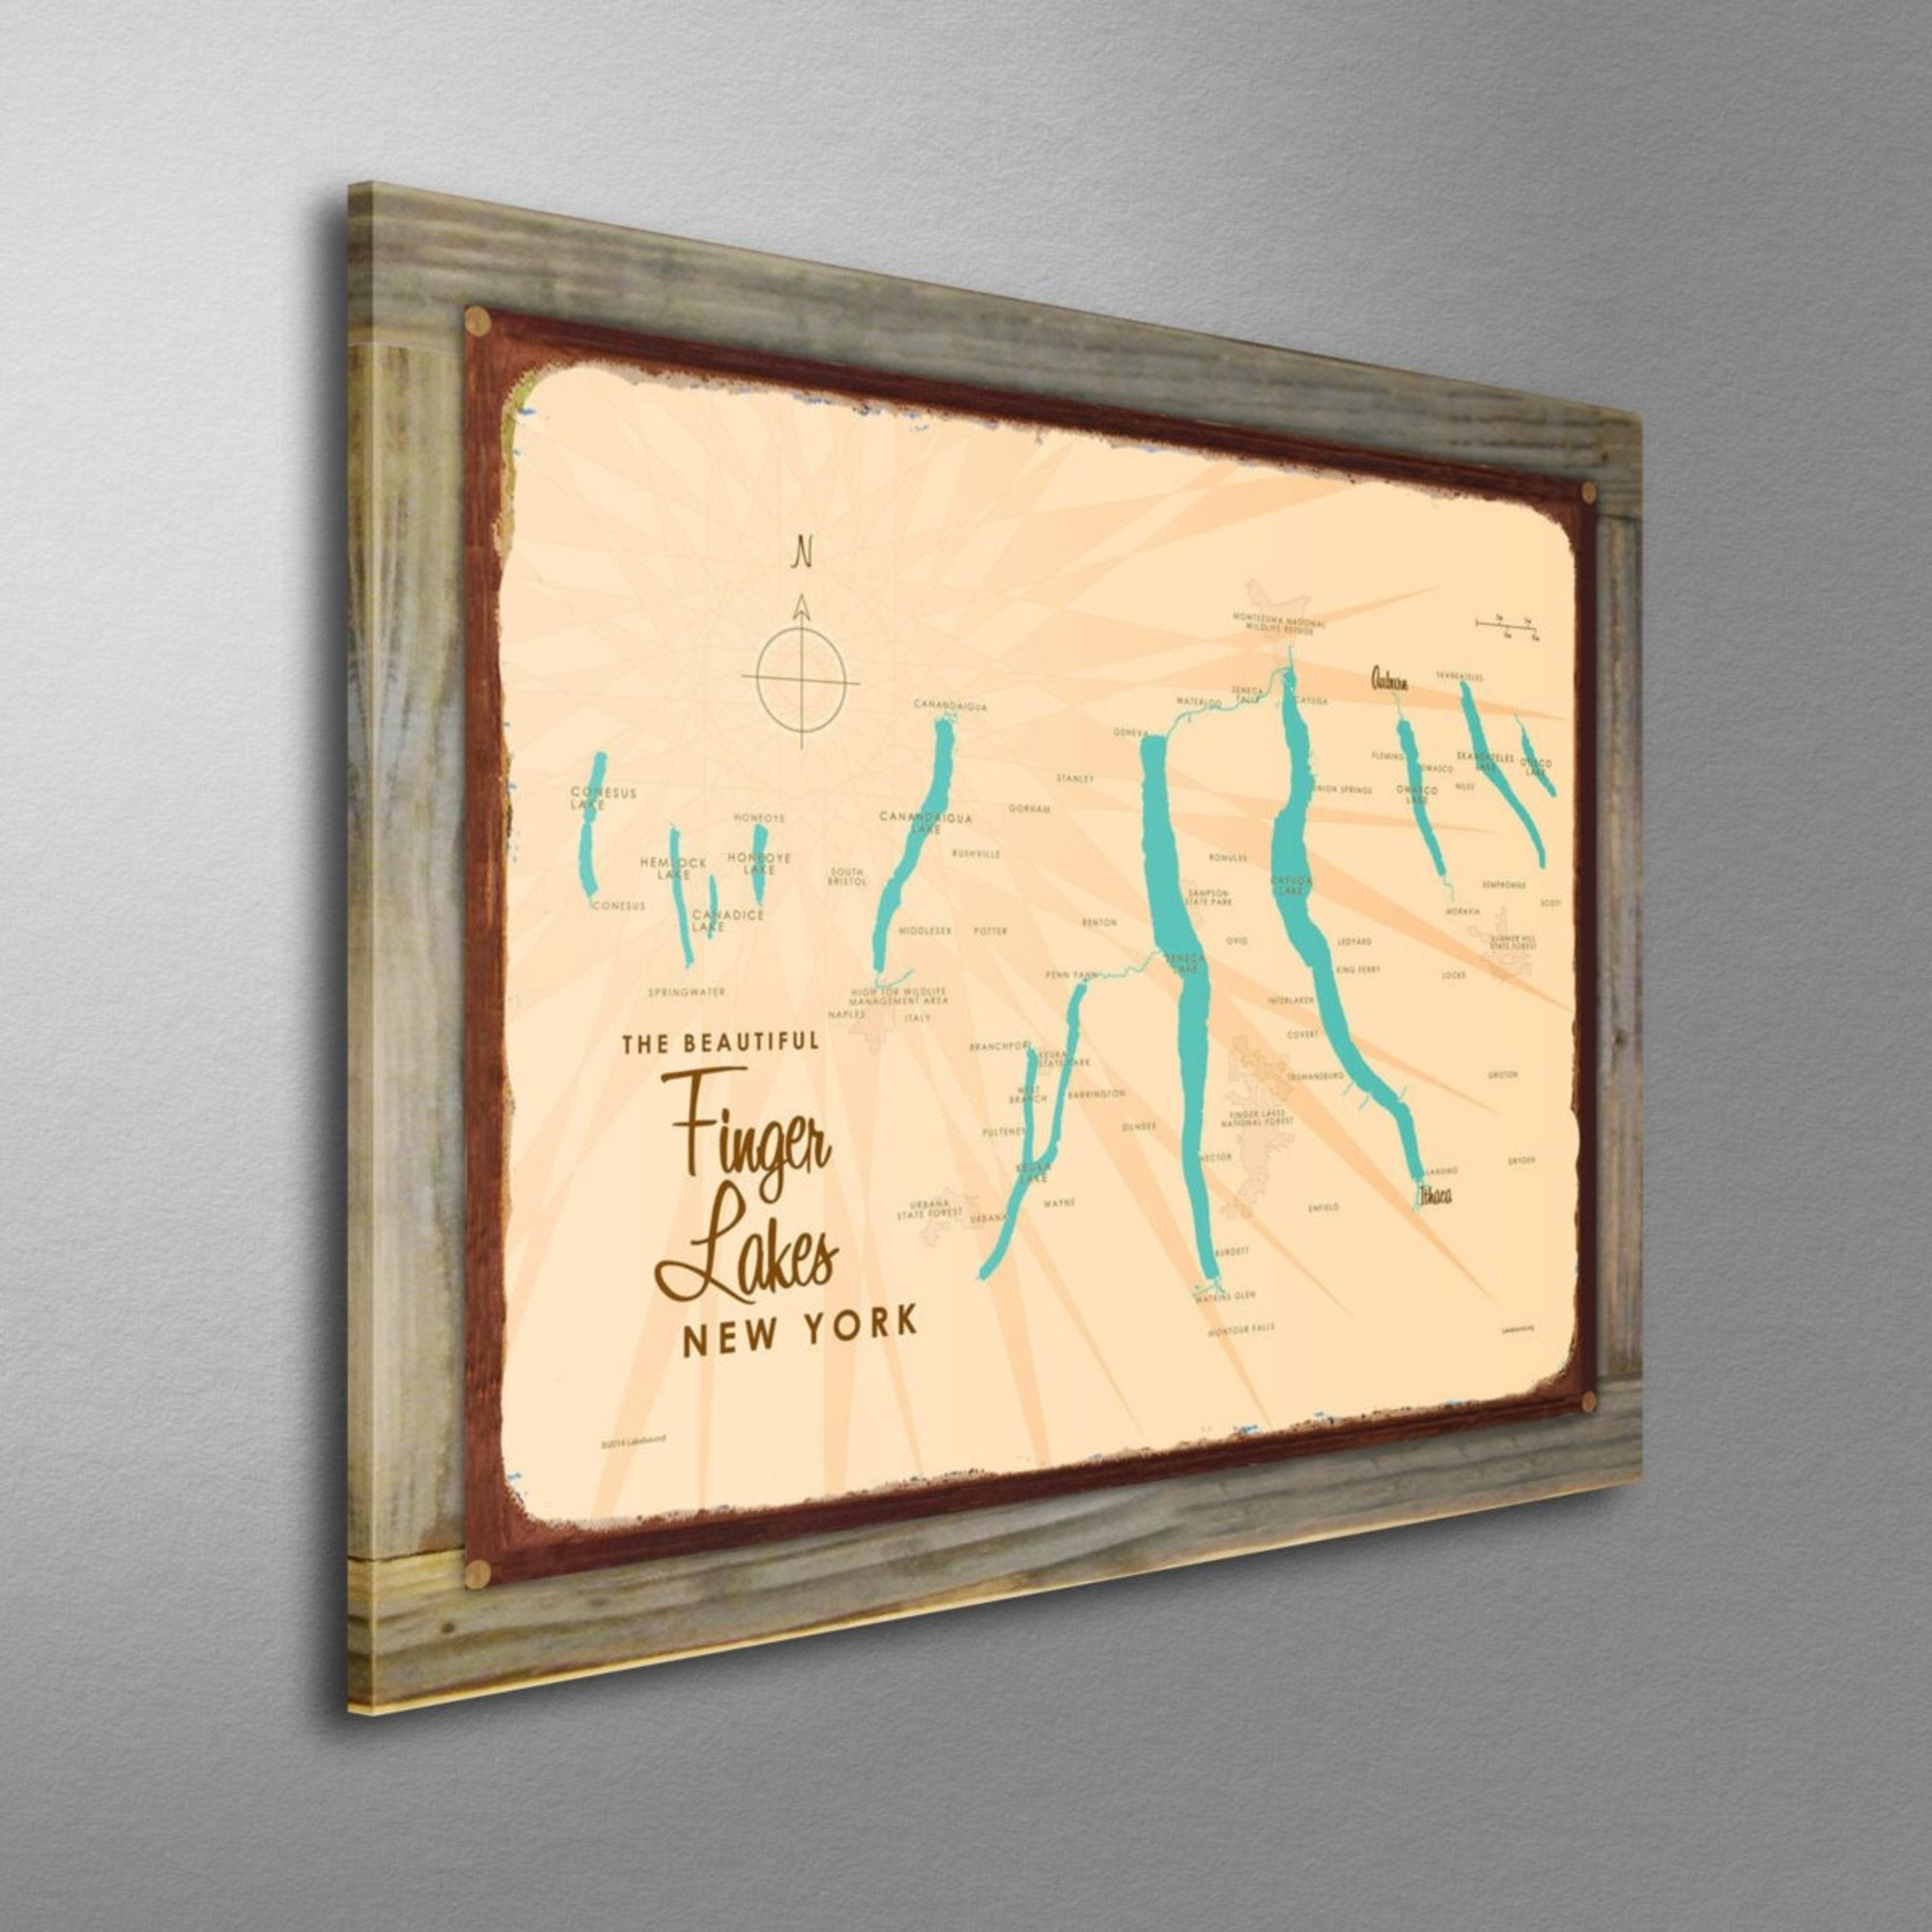 Finger Lakes New York, Wood-Mounted Rustic Metal Sign Map Art